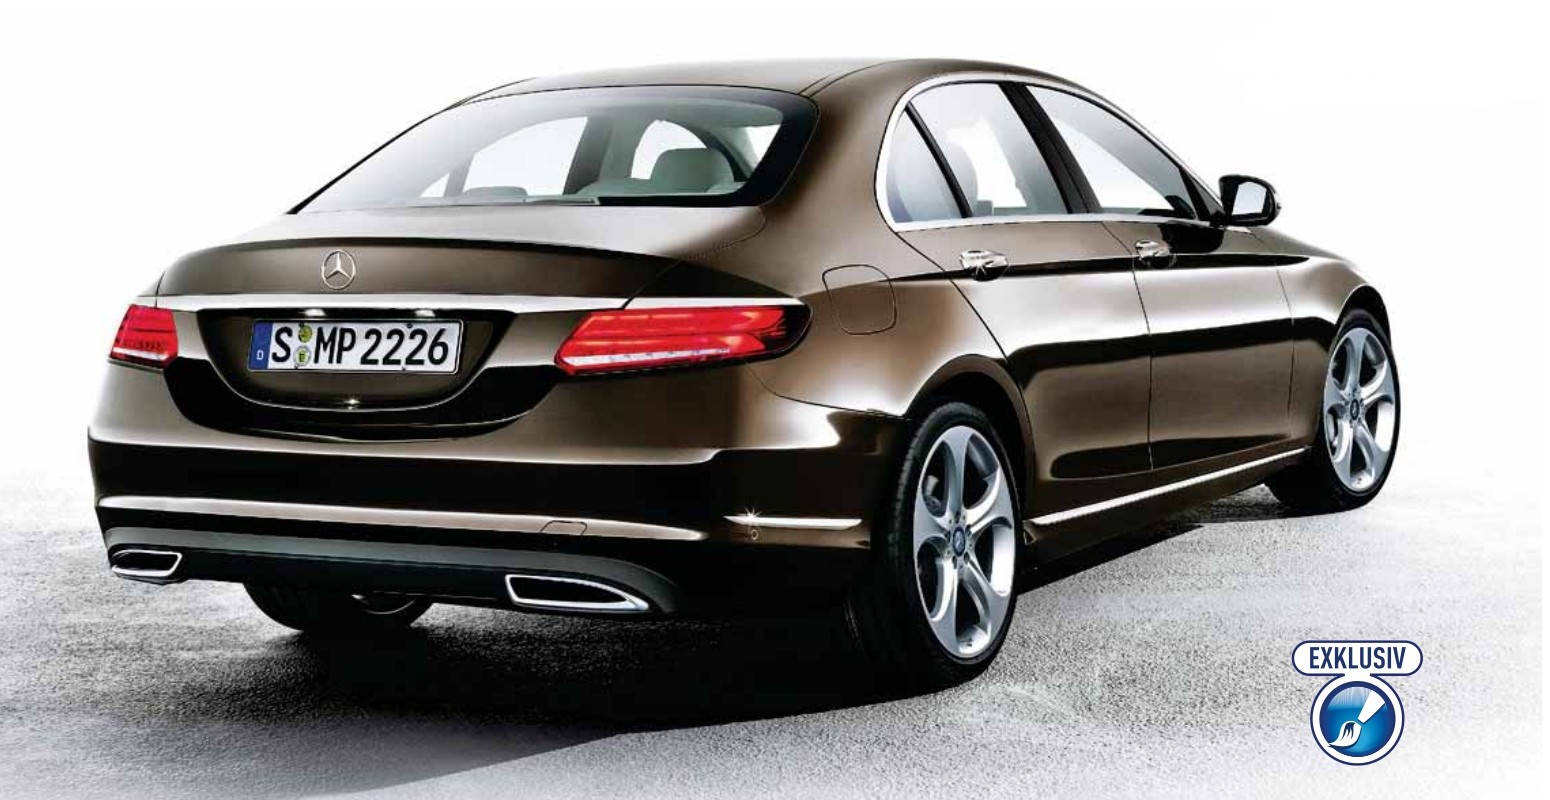 2016 mercedes classe e w213. Black Bedroom Furniture Sets. Home Design Ideas